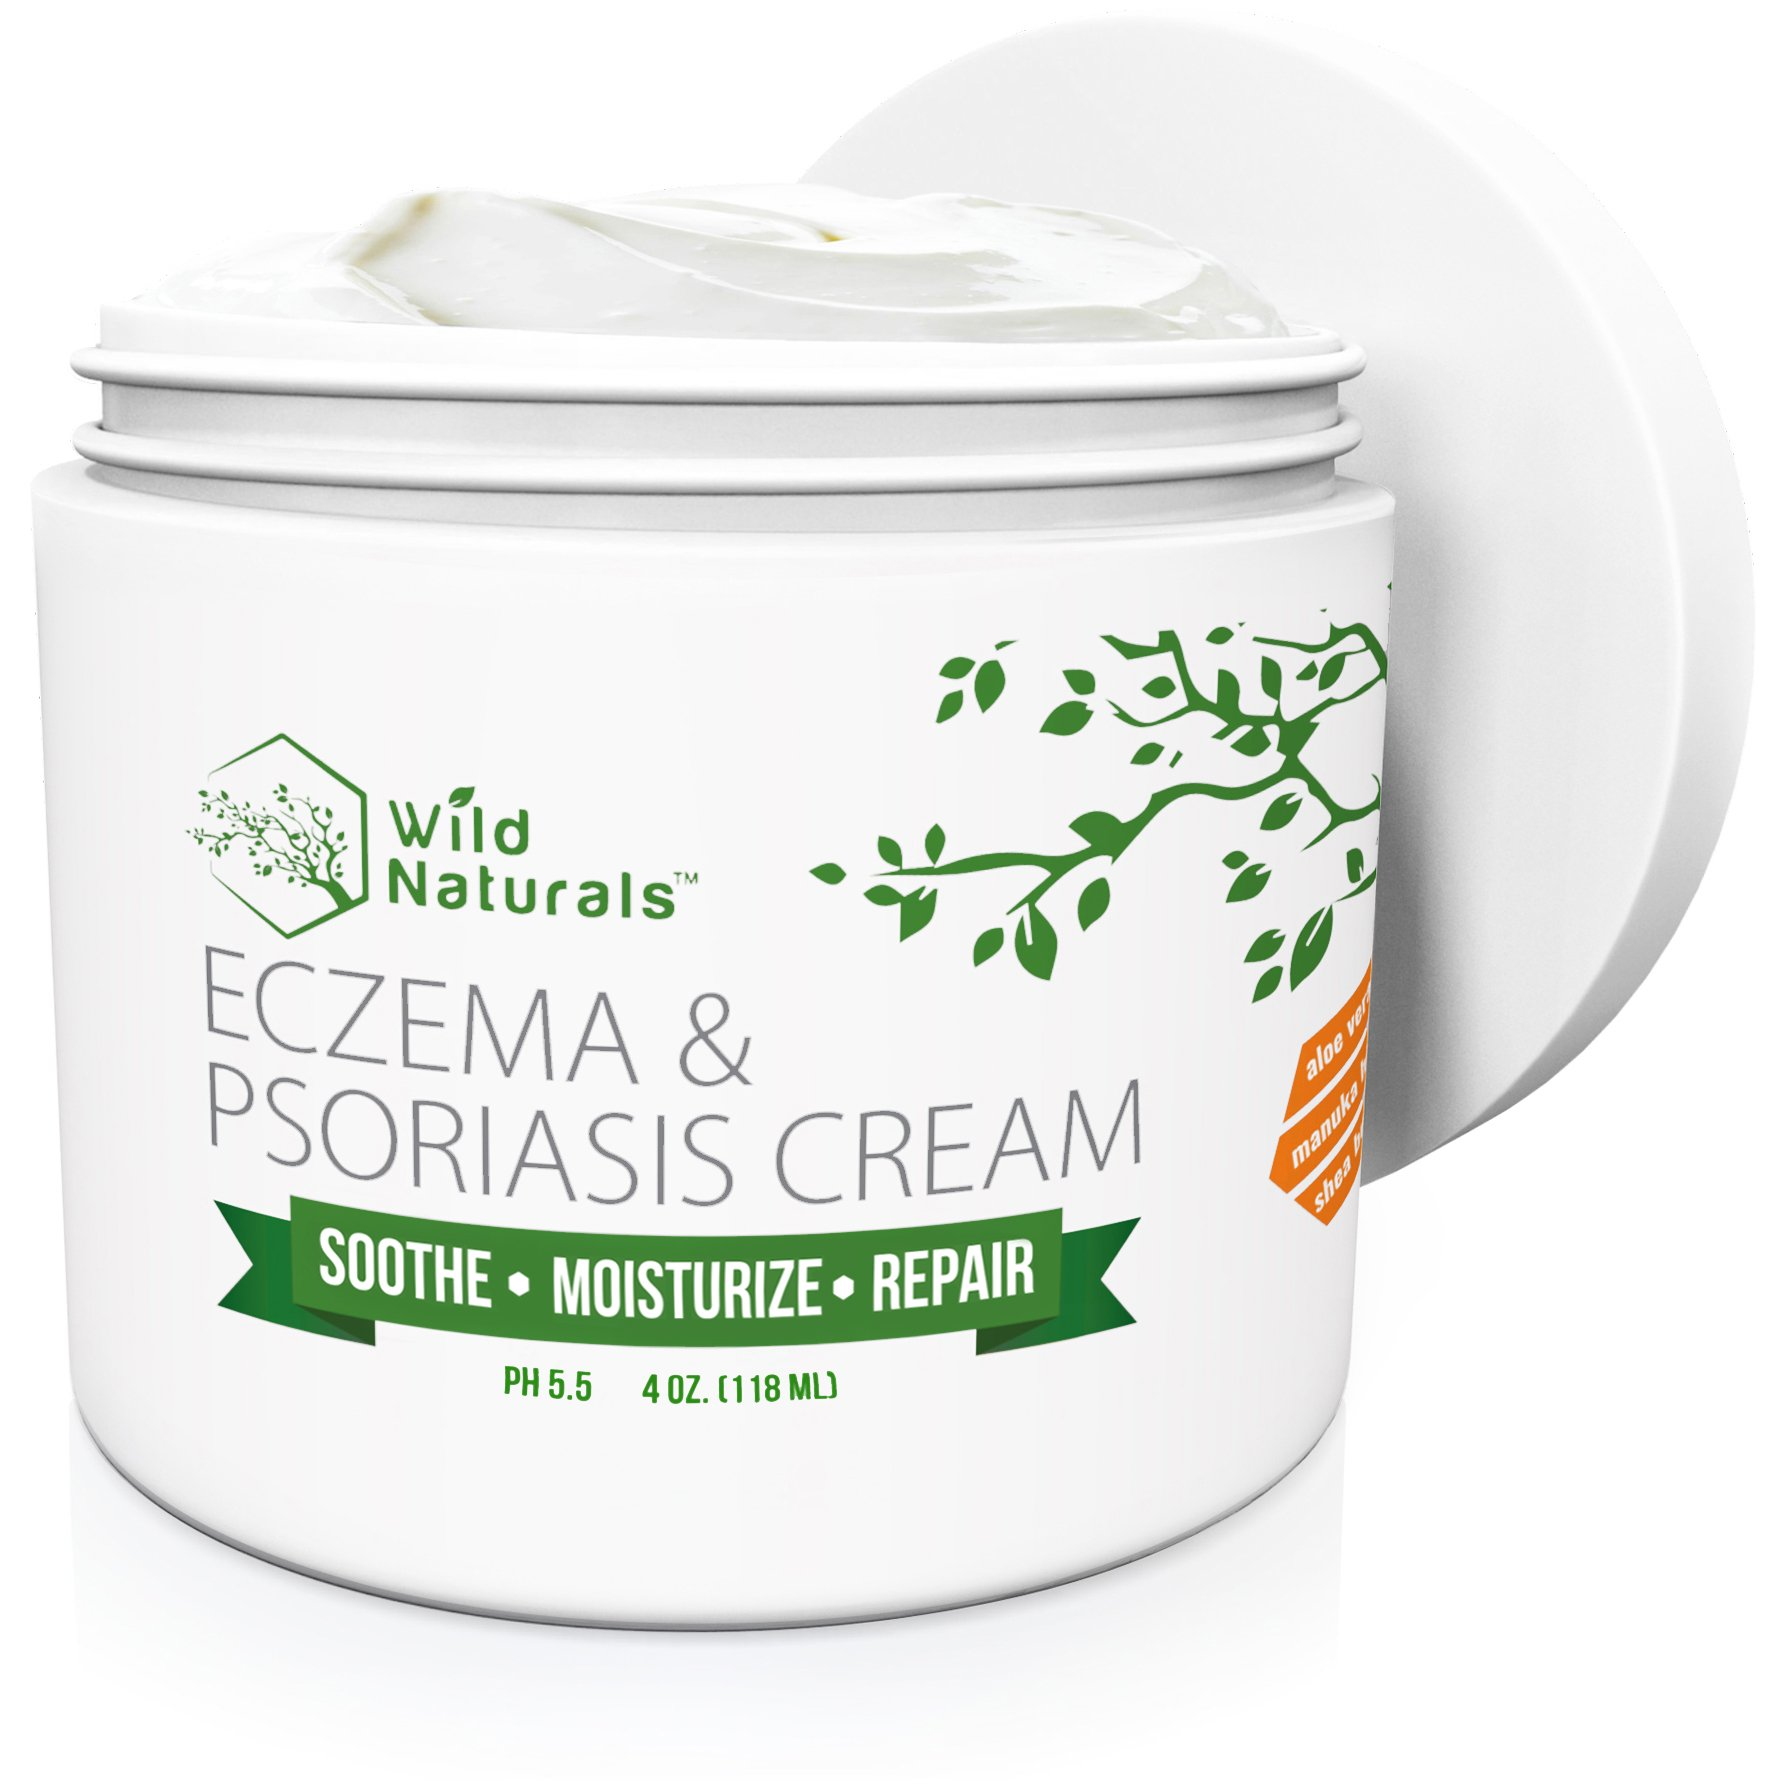 Wild Naturals Eczema Psoriasis Cream - for Dry, Irritated Skin, Itch Relief, Dermatitis, Rosacea, and Shingles. Natural 15-in-1 Formula Promotes Healing and Calms Redness, Rash and Itching Fast by Wild Naturals